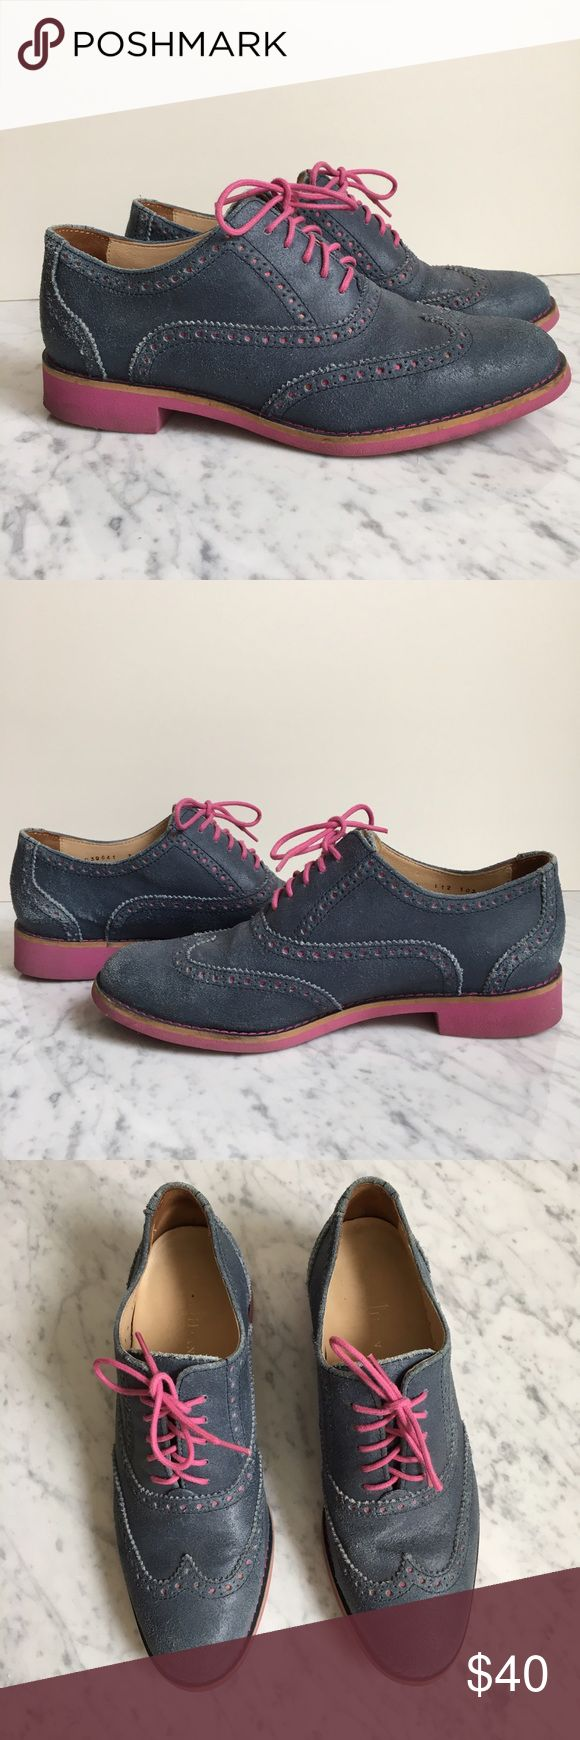 Cole Haan size 7 women's oxfords Lightly used pair of size 7 Cole Haan navy blue oxfords. Contrast raspberry colored soles and laces and decorative brogue detail around the toe. Excellent condition as they were an impulse buy but a color I never have a reason to wear. Super comfortable and stylish to boot! Genuine shoes as they were purchased here in NYC at the Cole Haan store. Cole Haan Shoes